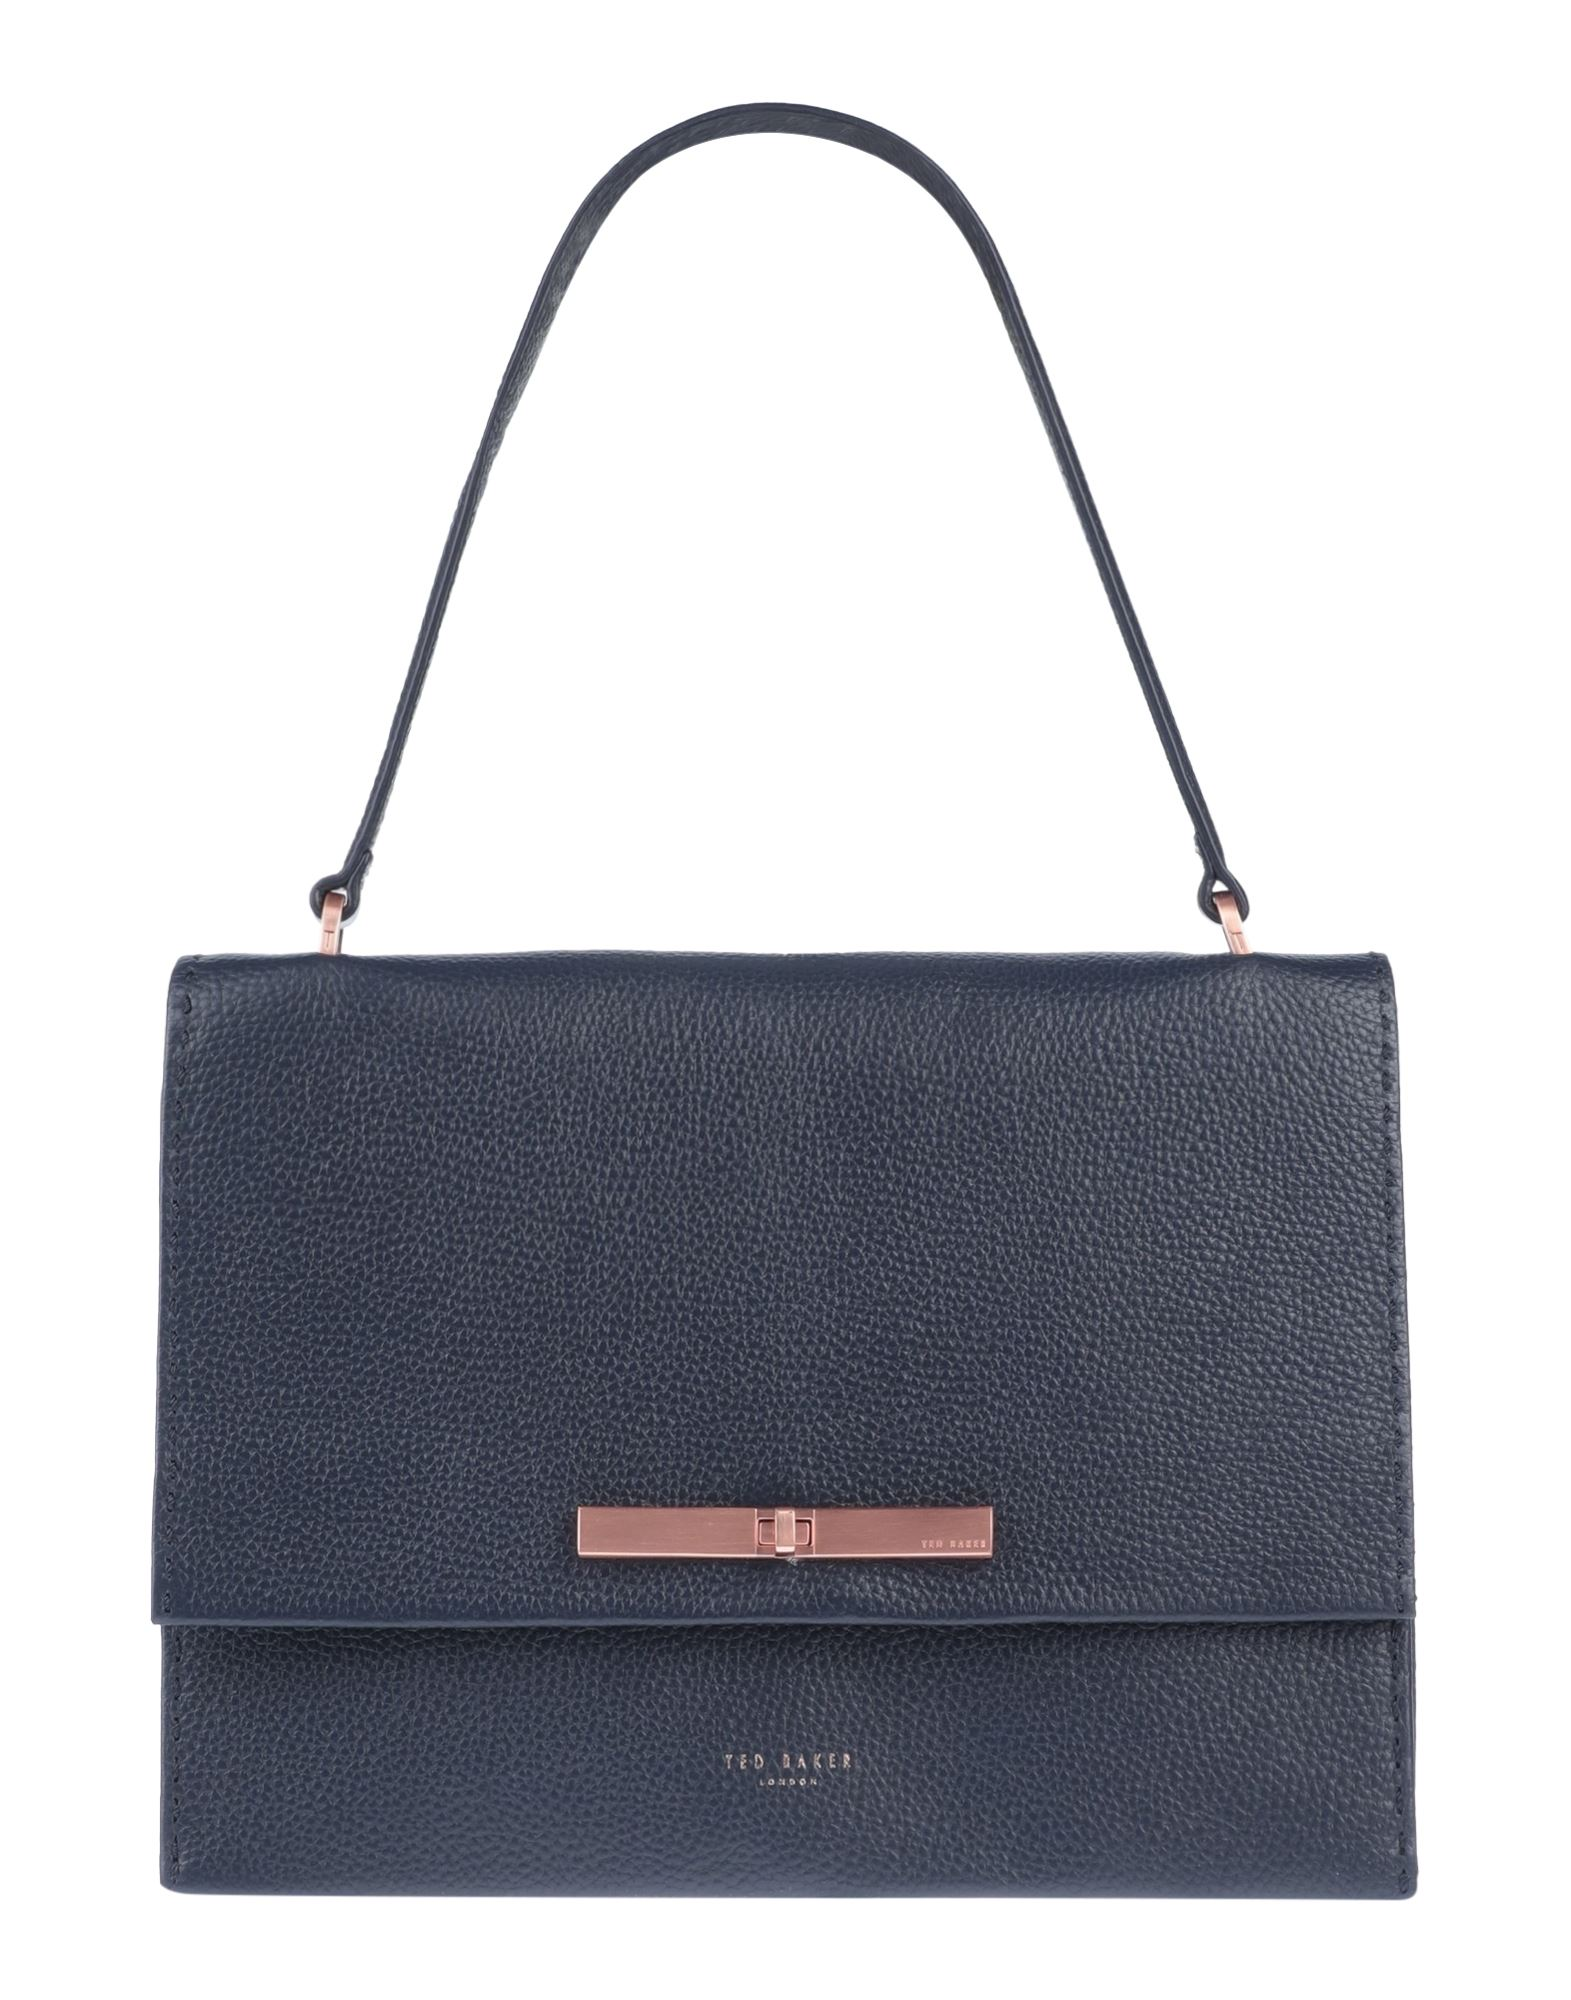 TED BAKER Handbags - Item 45554996